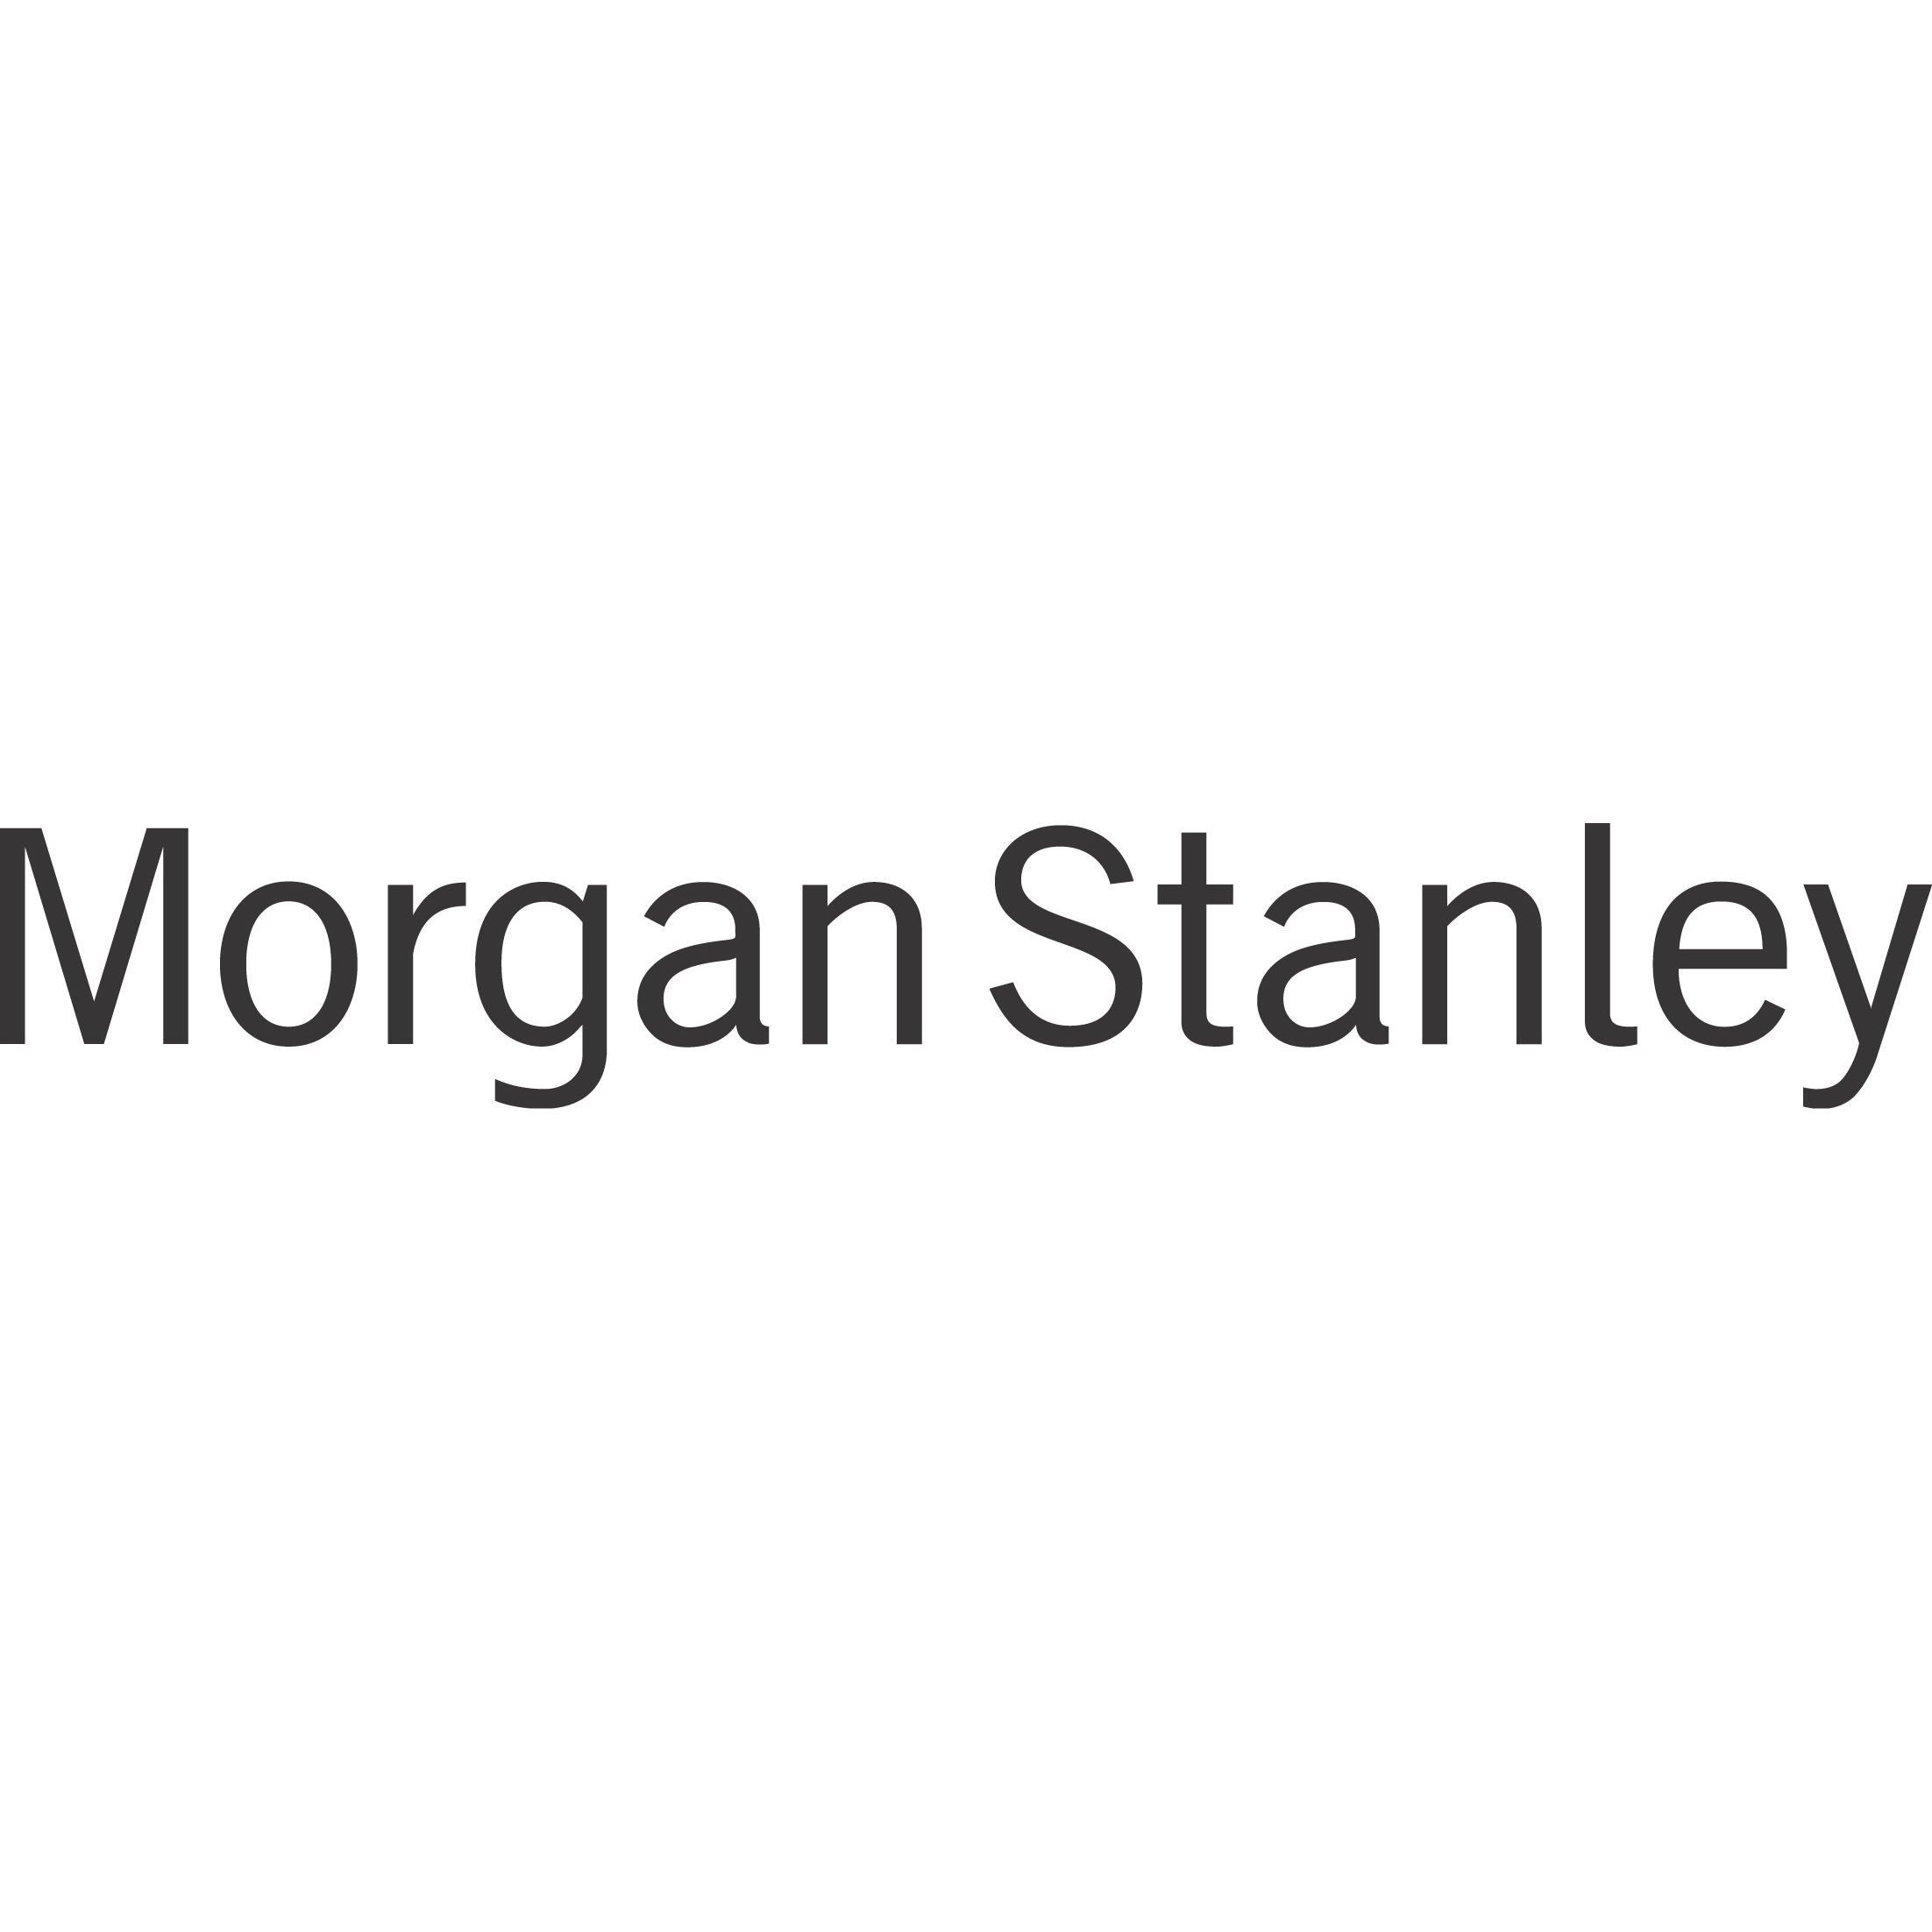 Steven Allison - Morgan Stanley | Financial Advisor in Stuart,Florida